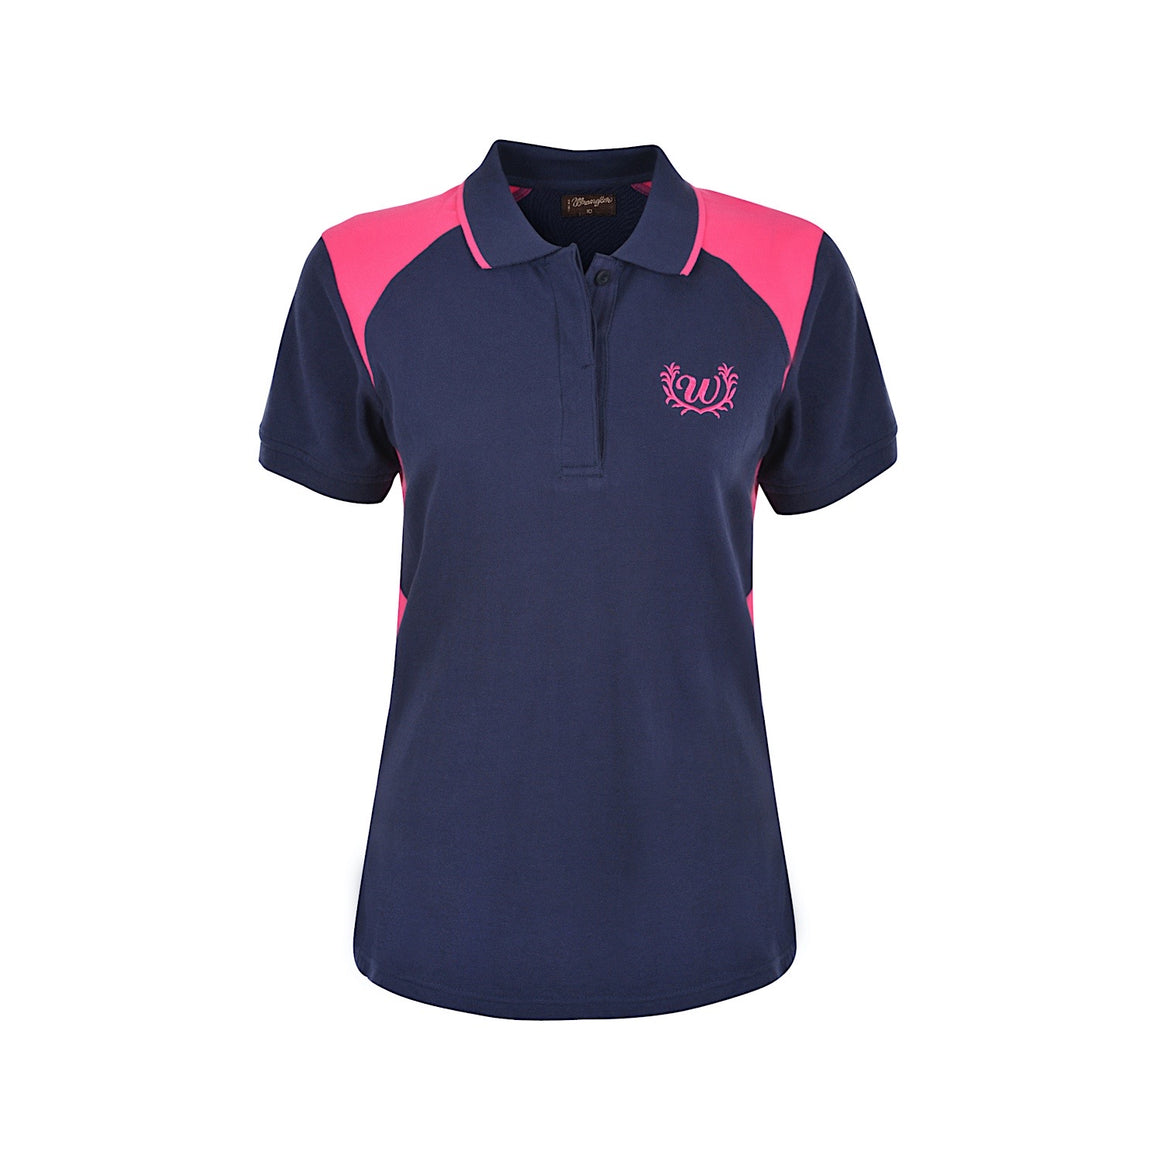 Wrangler Womens Kelly Spliced Polo Navy/Pink